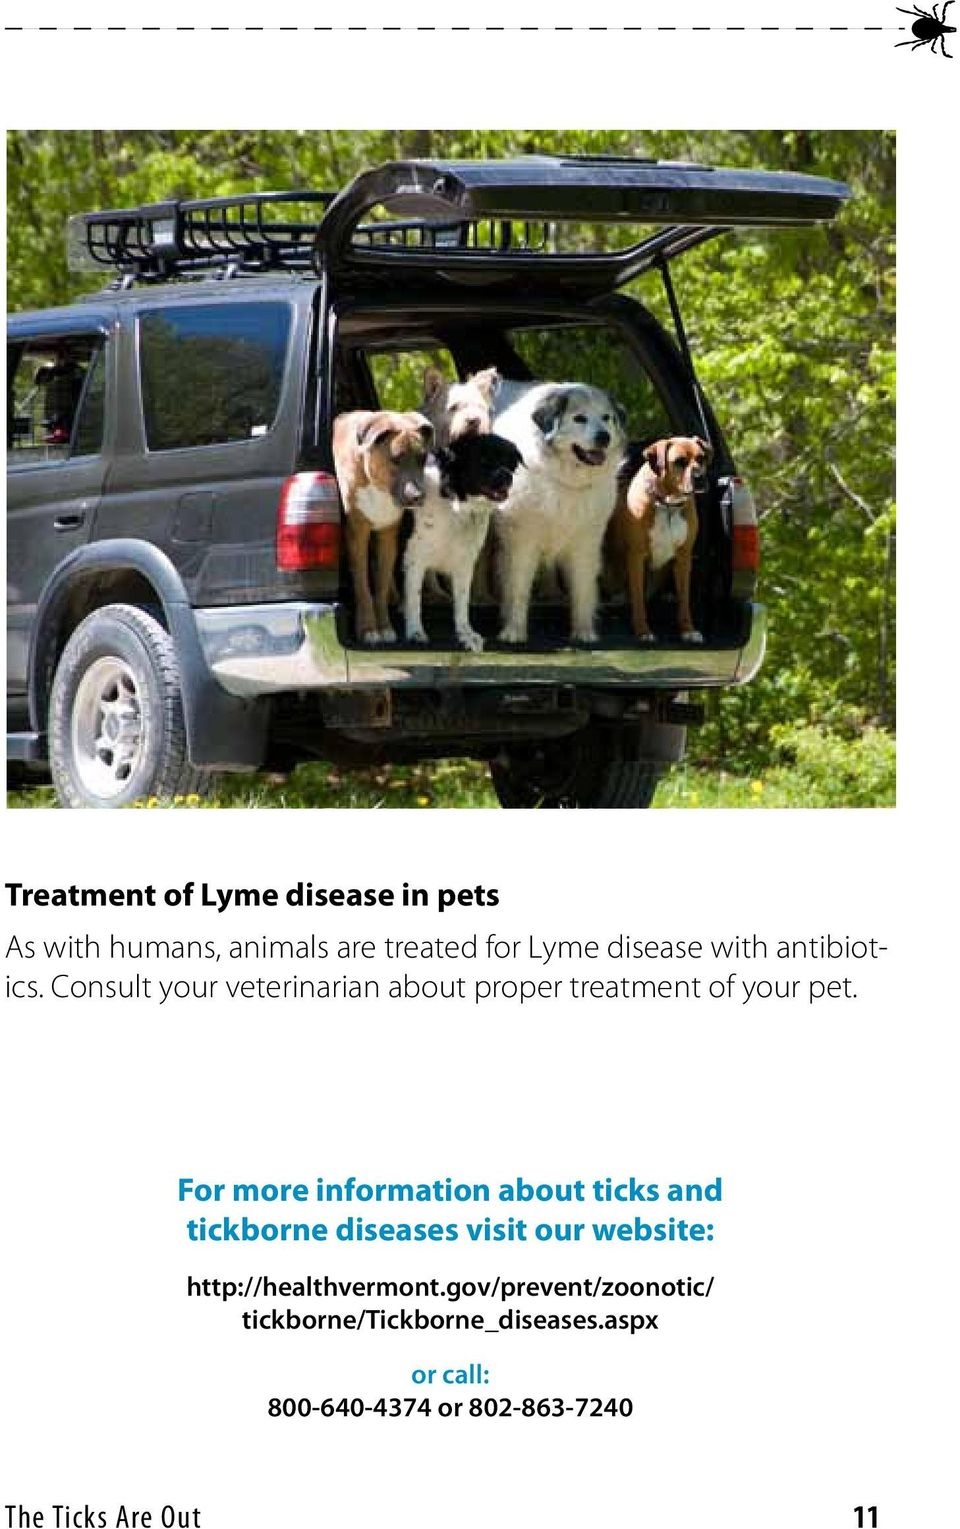 For more information about ticks and tickborne diseases visit our website: